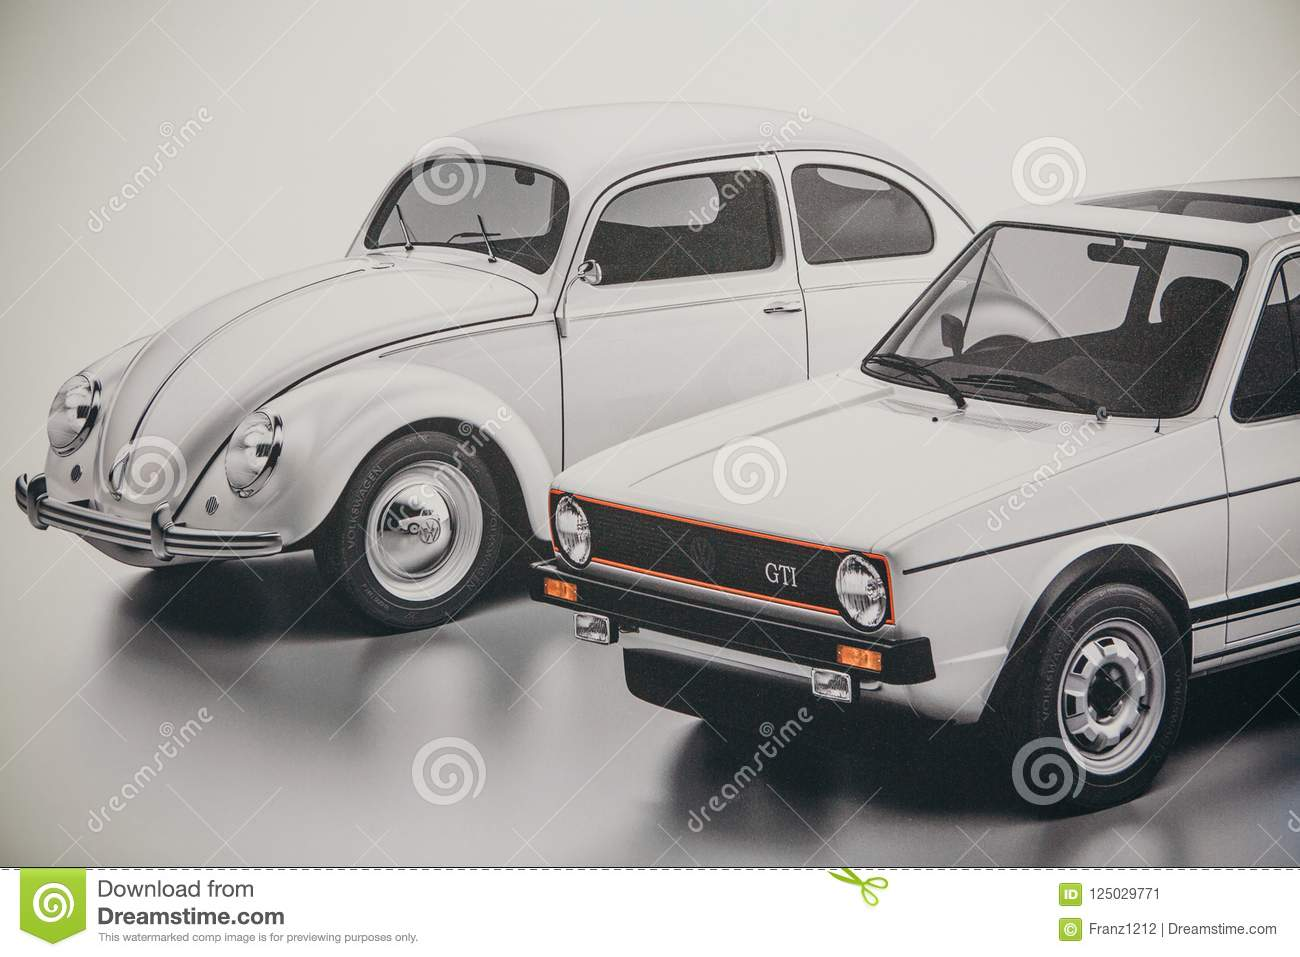 A Photo Of An Image Of Old Fashioned Cars Volkswagen Beetle And Jetta Editorial Photo Image Of Compact Archaic 125029771